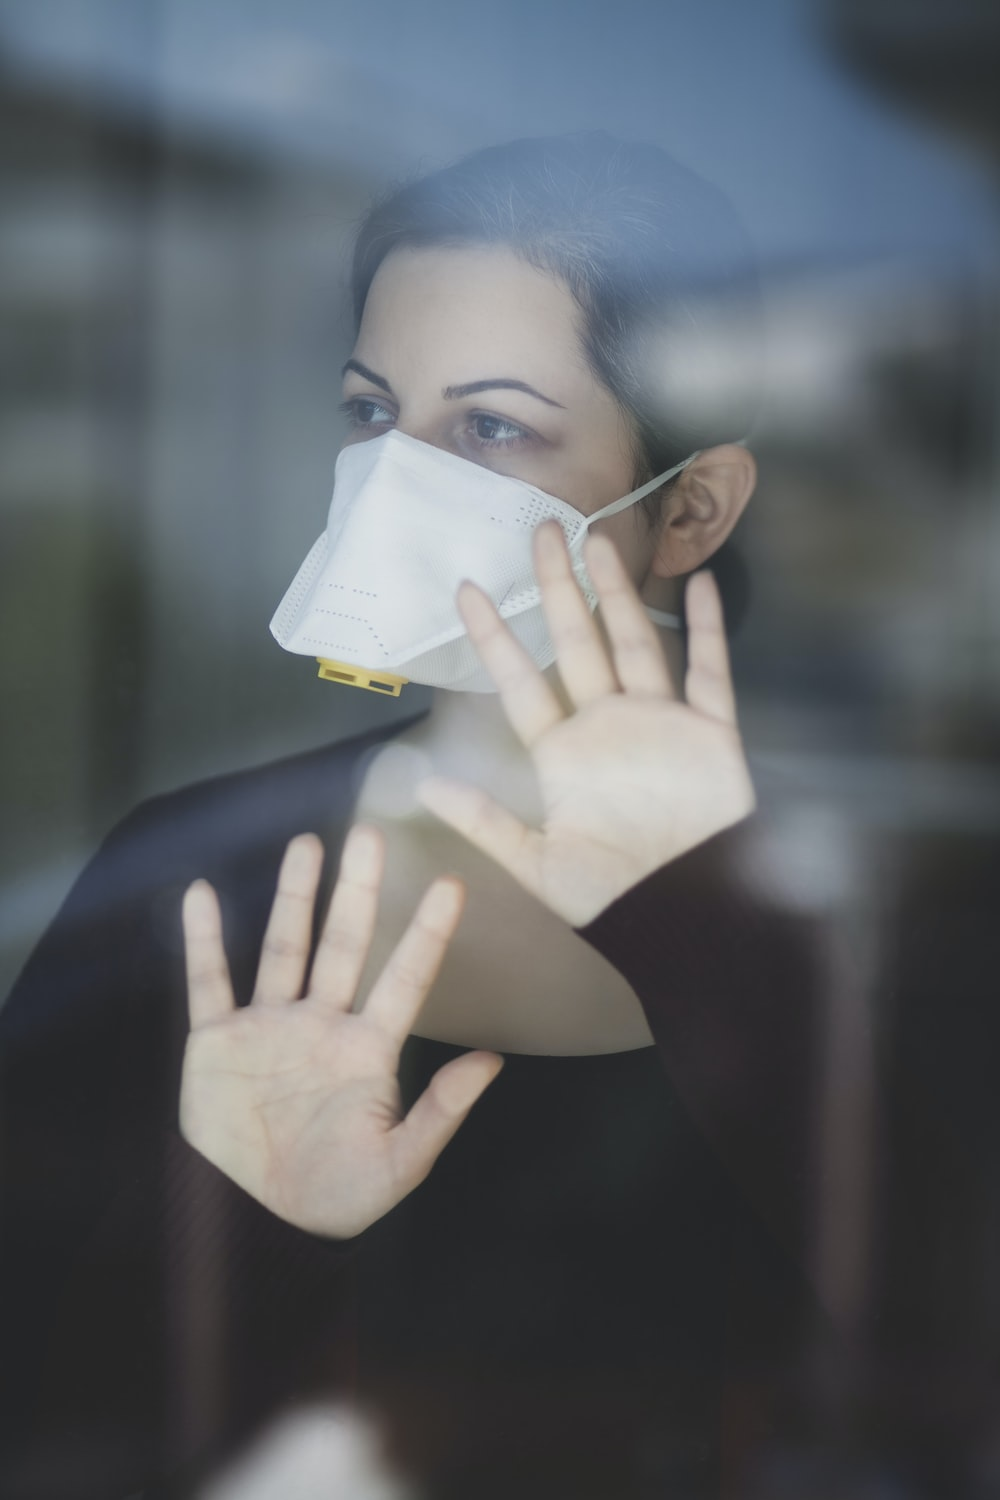 woman in black shirt covering face with white paper